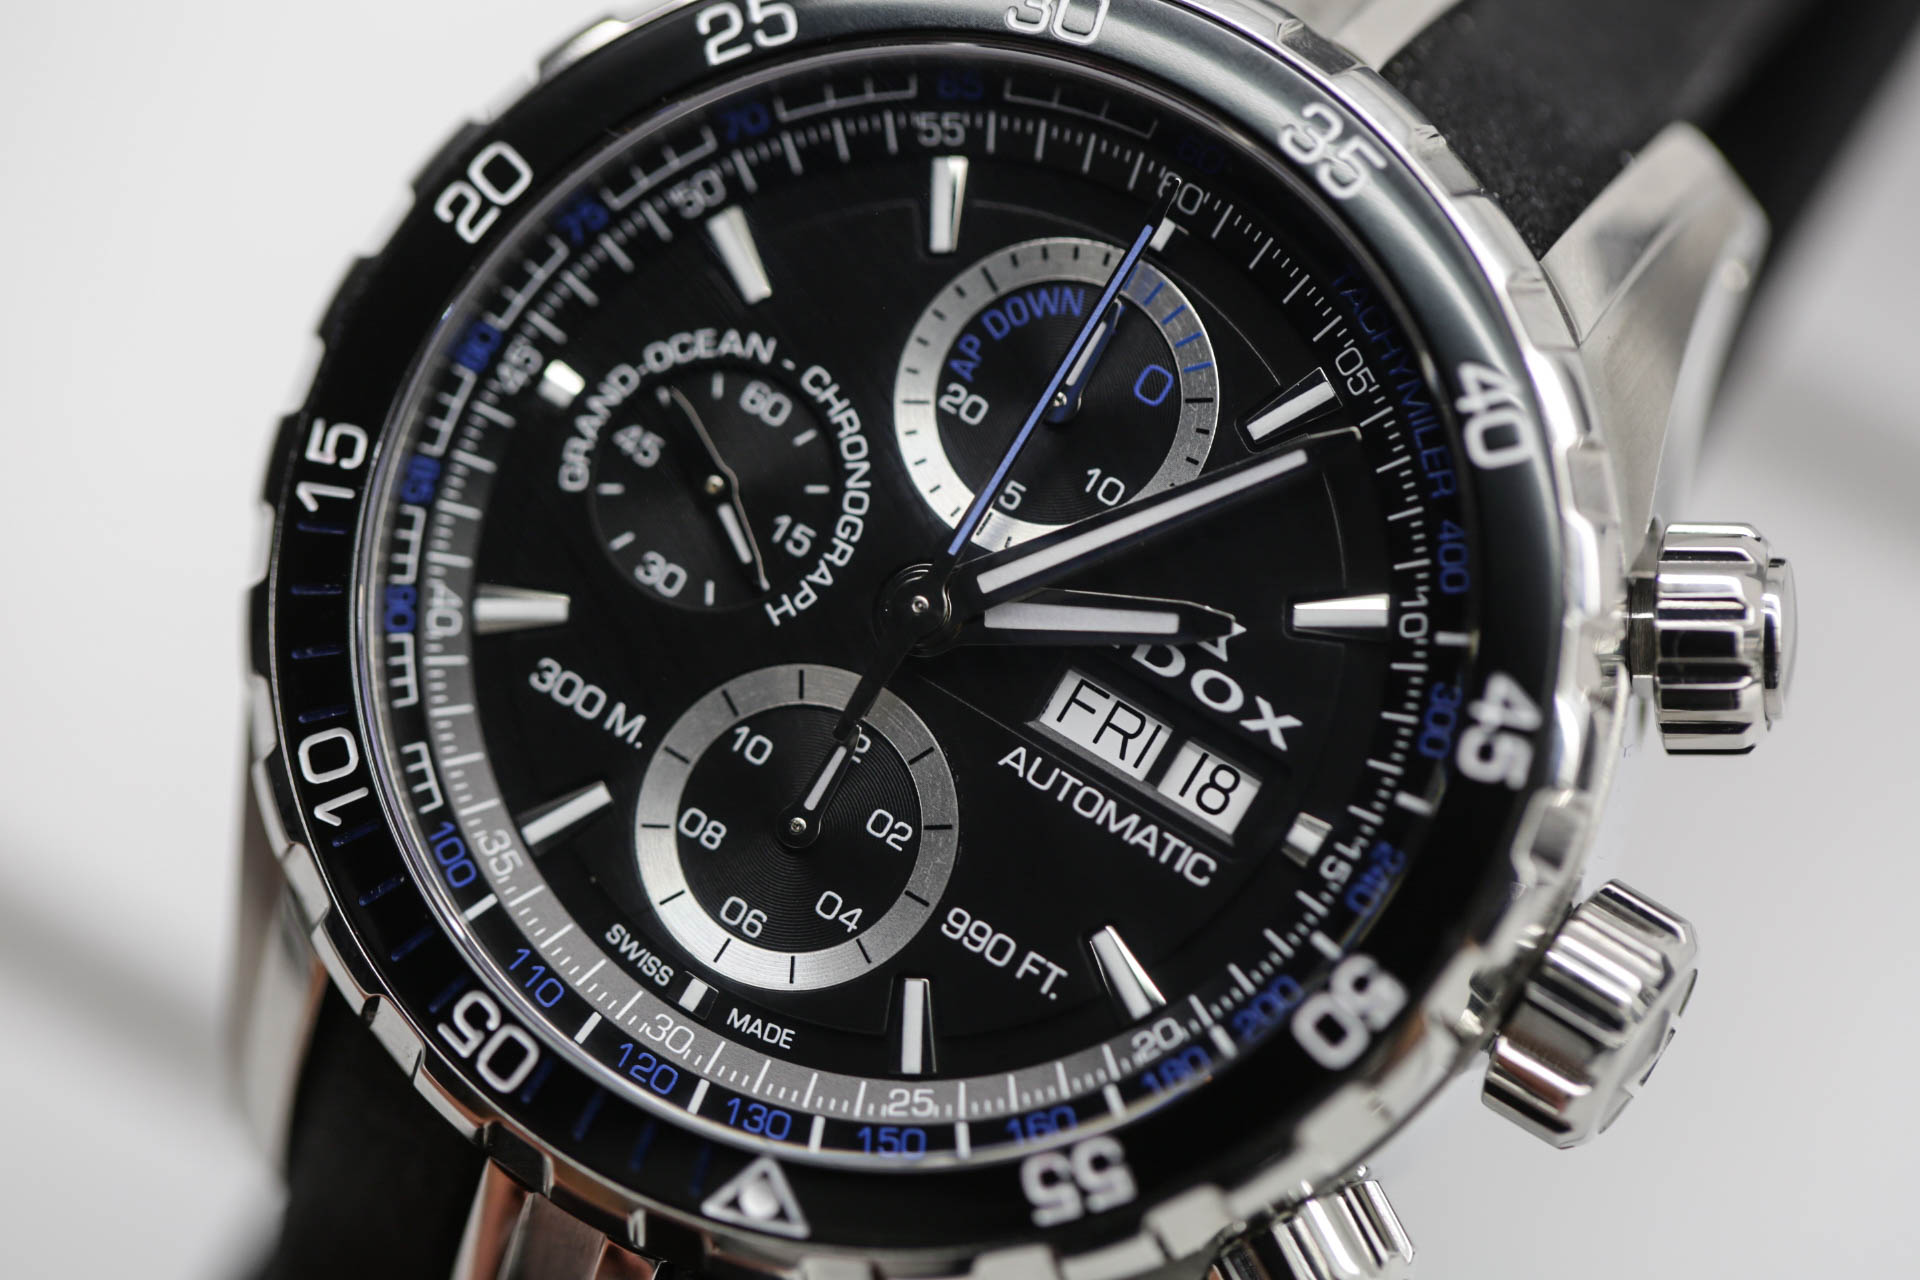 of how names watch mission impossible brands s world watches got most their the famous